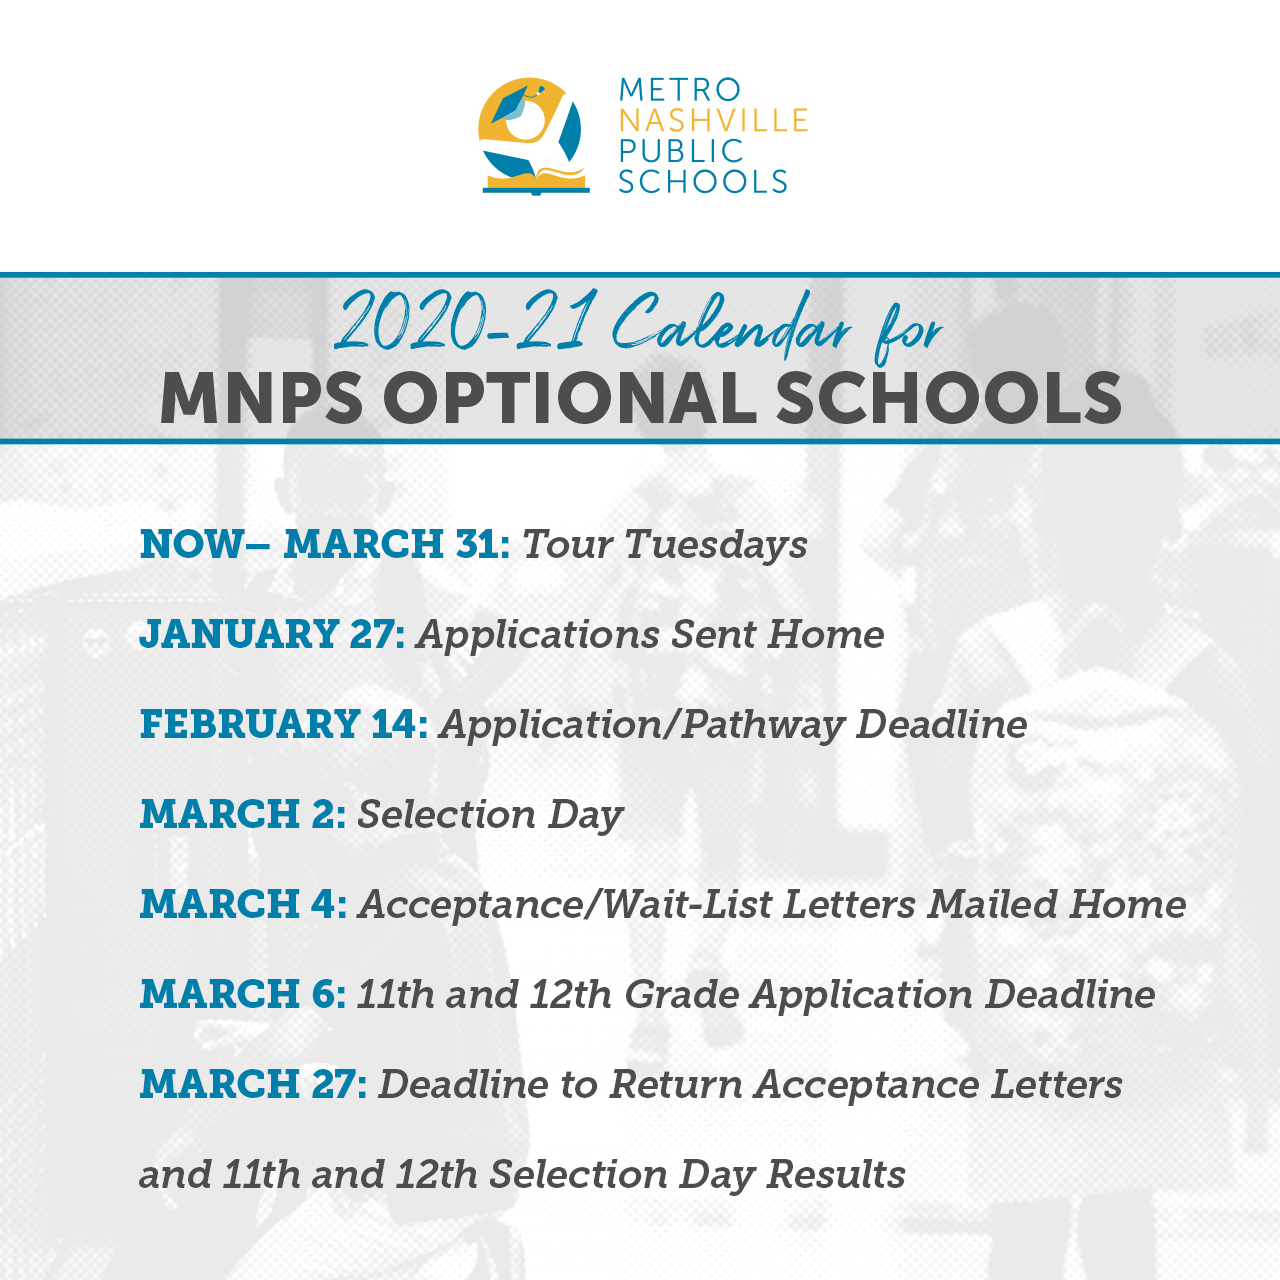 School Choice Applications for 2020 21 Open Monday, Jan. 27